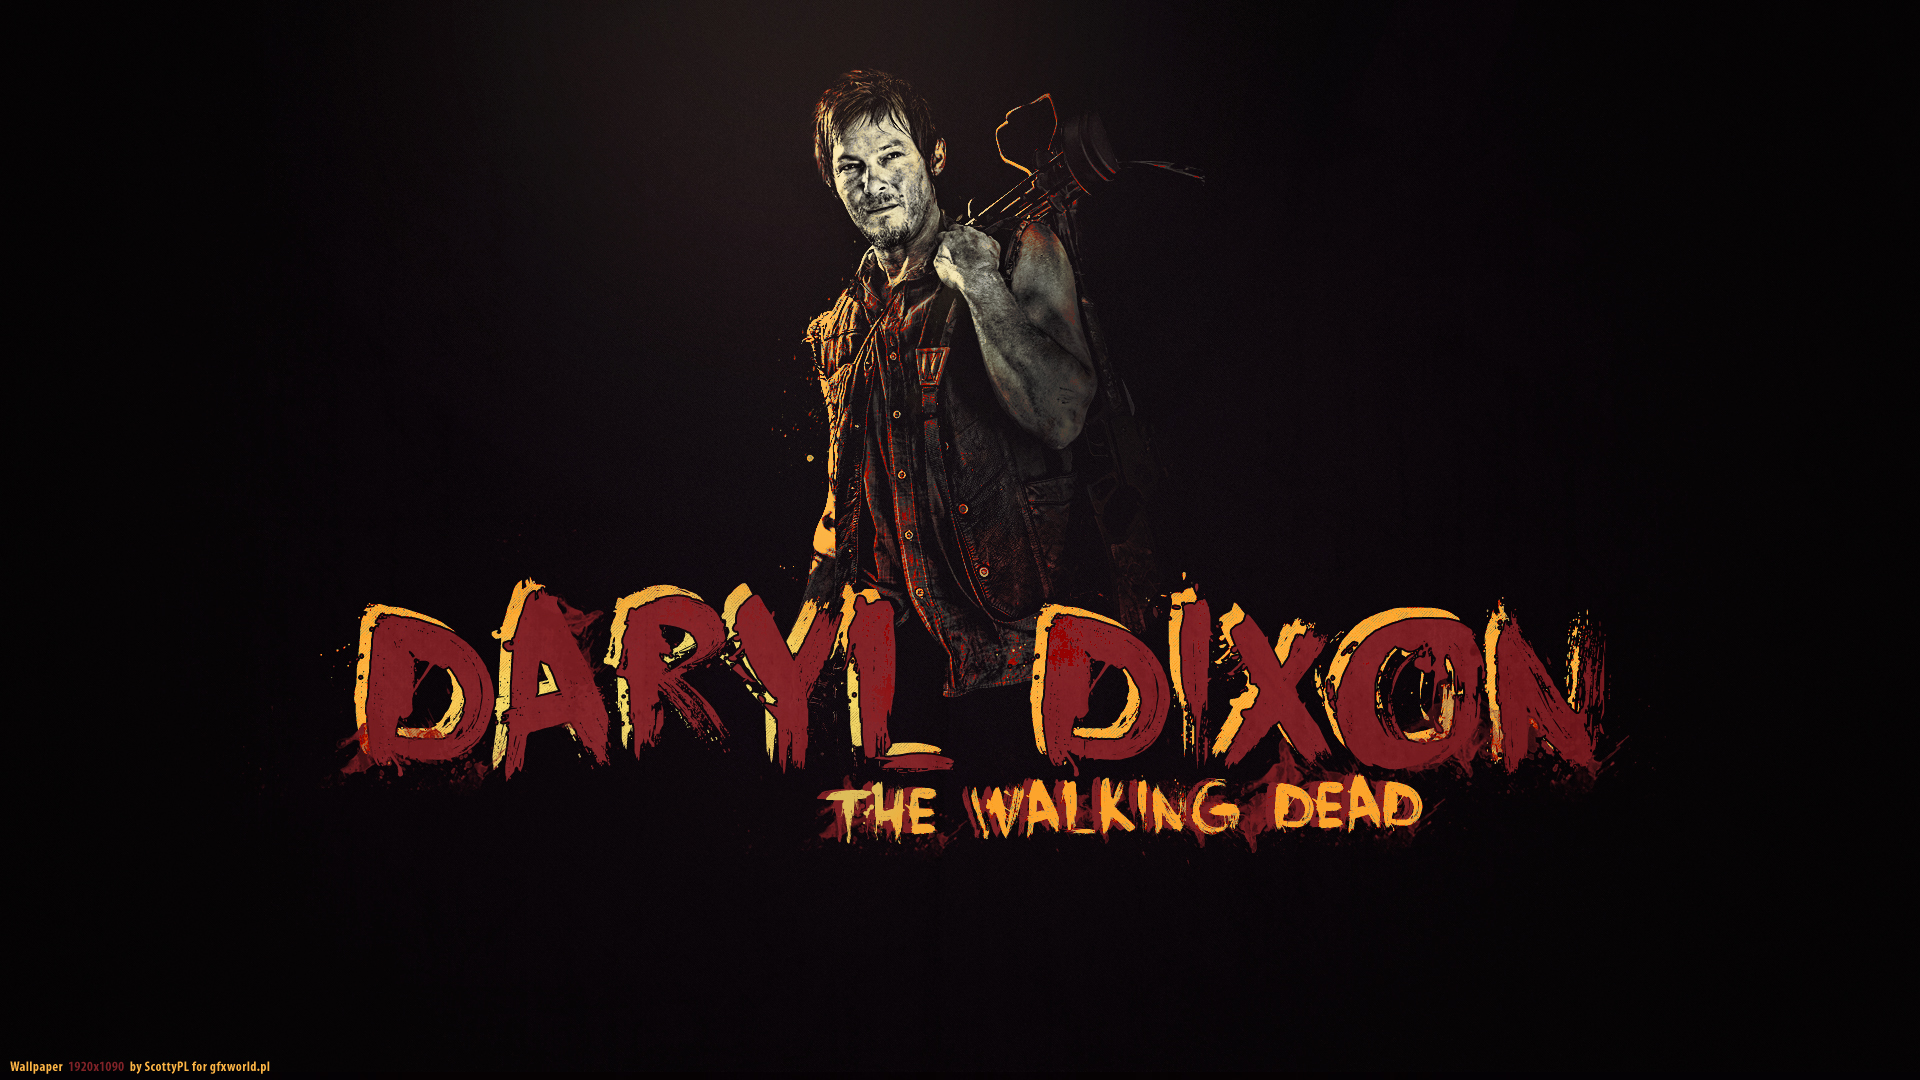 Daryl Dixon Computer Wallpapers, Desktop Backgrounds | 1920x1080 | ID ...